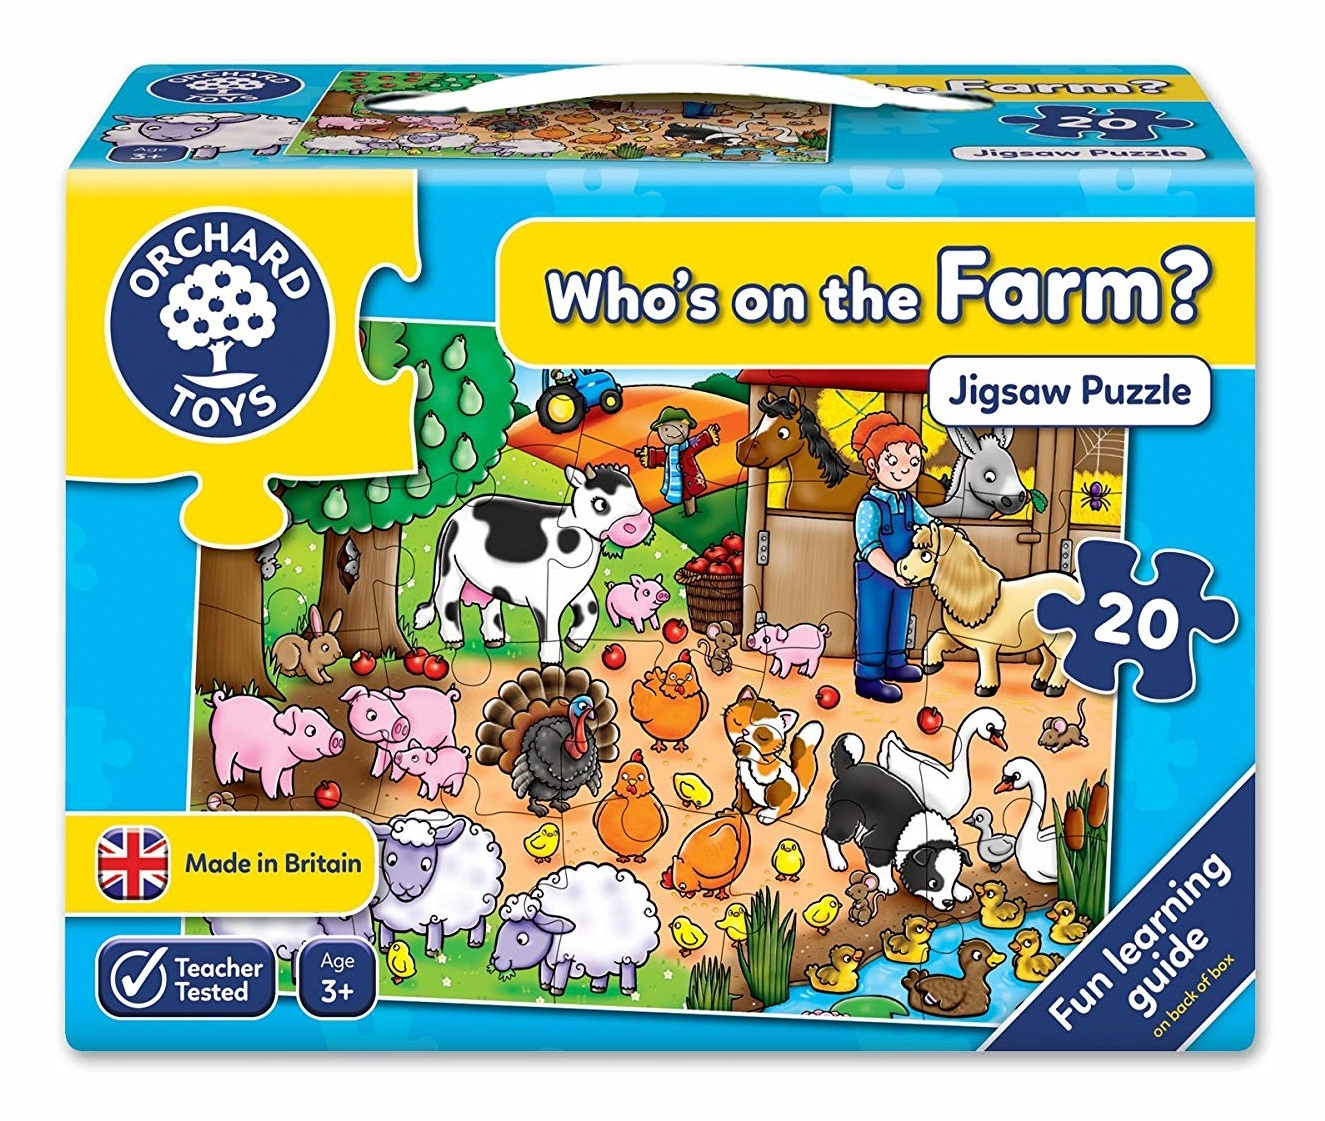 Orchard Toys: Who's On The Farm? - Jigsaw Puzzle image